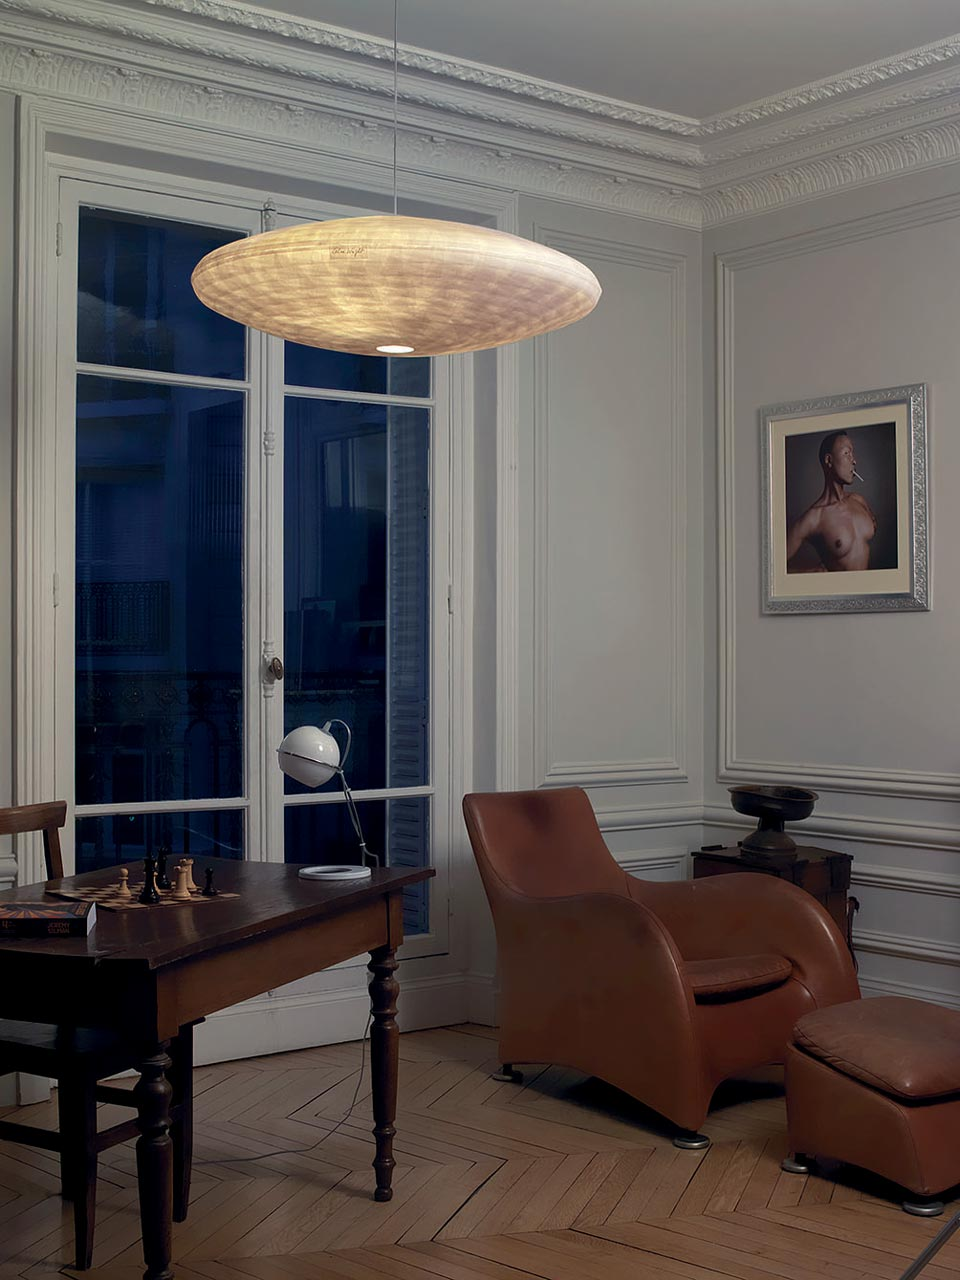 Luminaire suspension en papier japonais de grande dimension